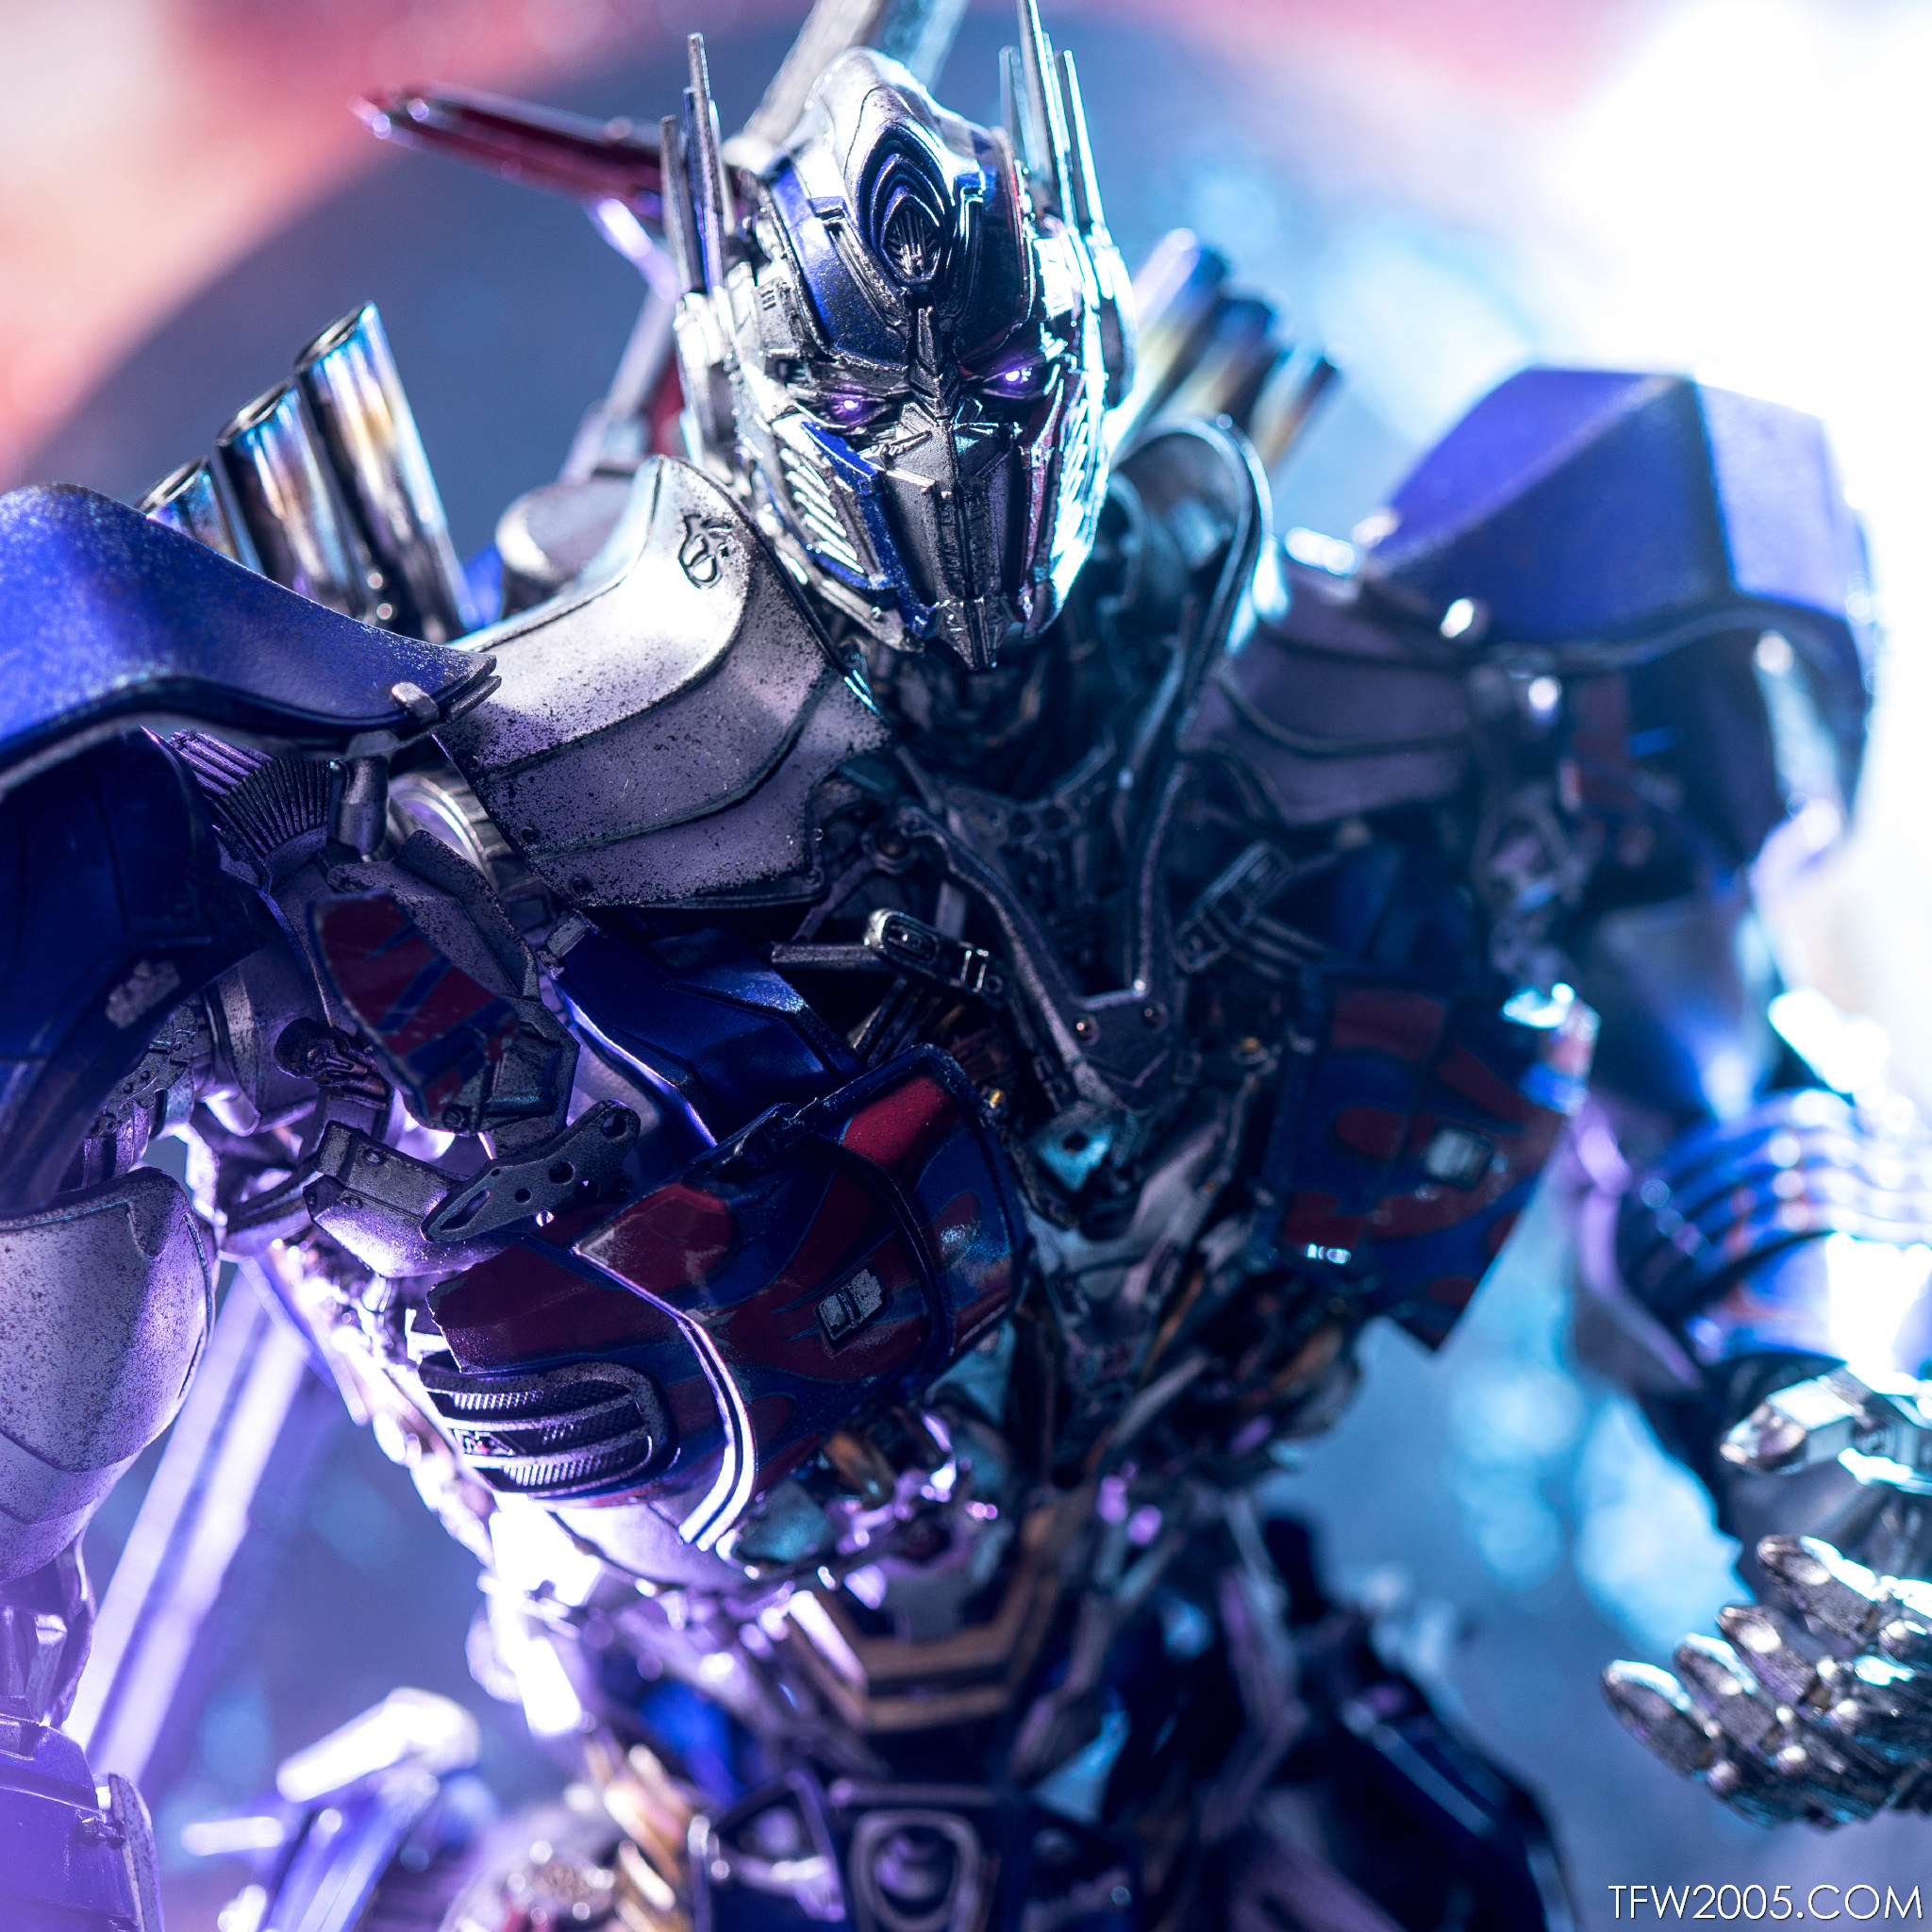 3a transformers the last knight optimus prime photo review